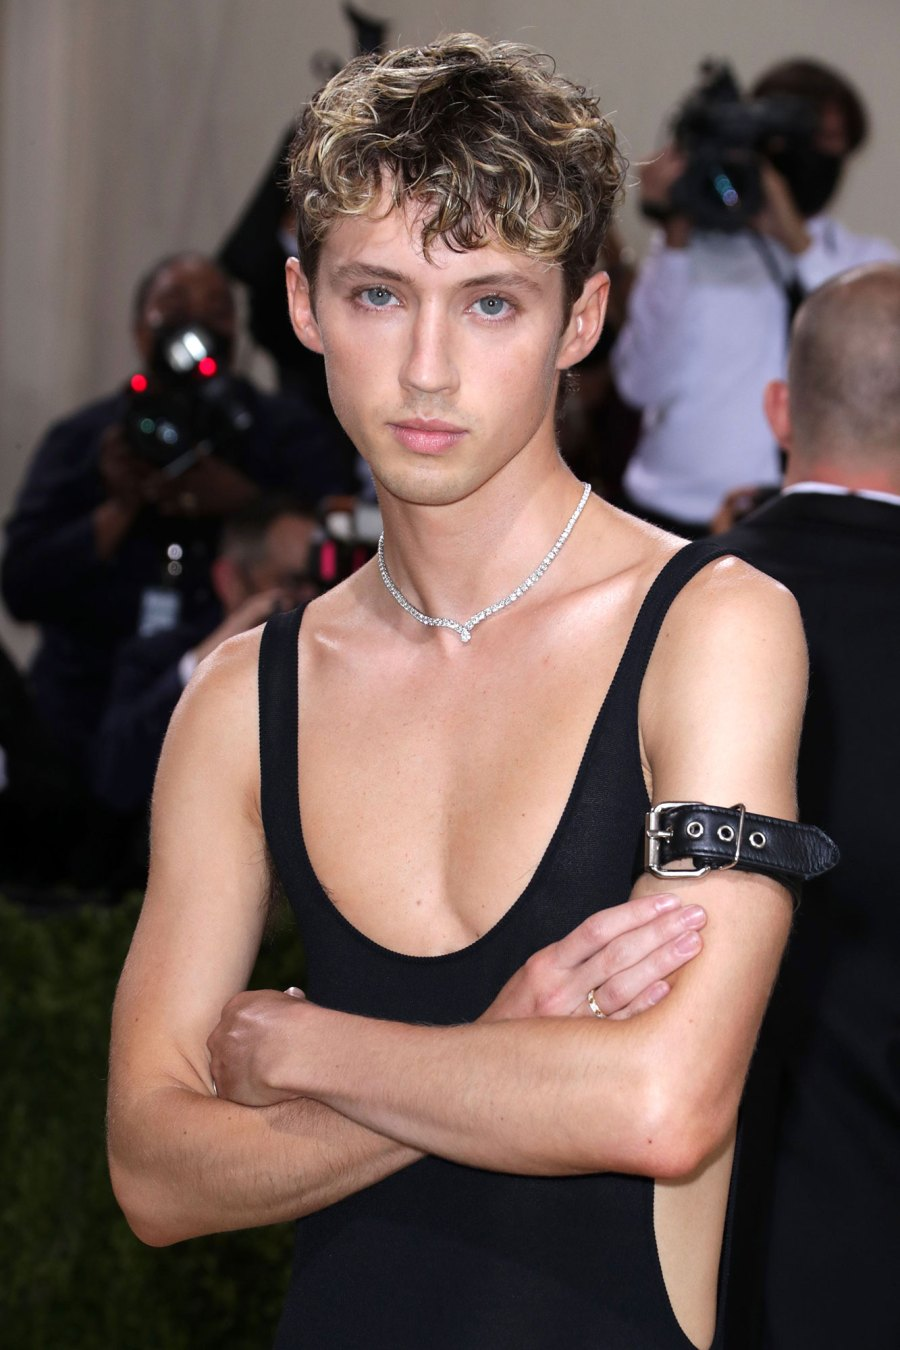 Troye Sivan Most Extravagant Celebrity Bling From the 2021 Met Gala